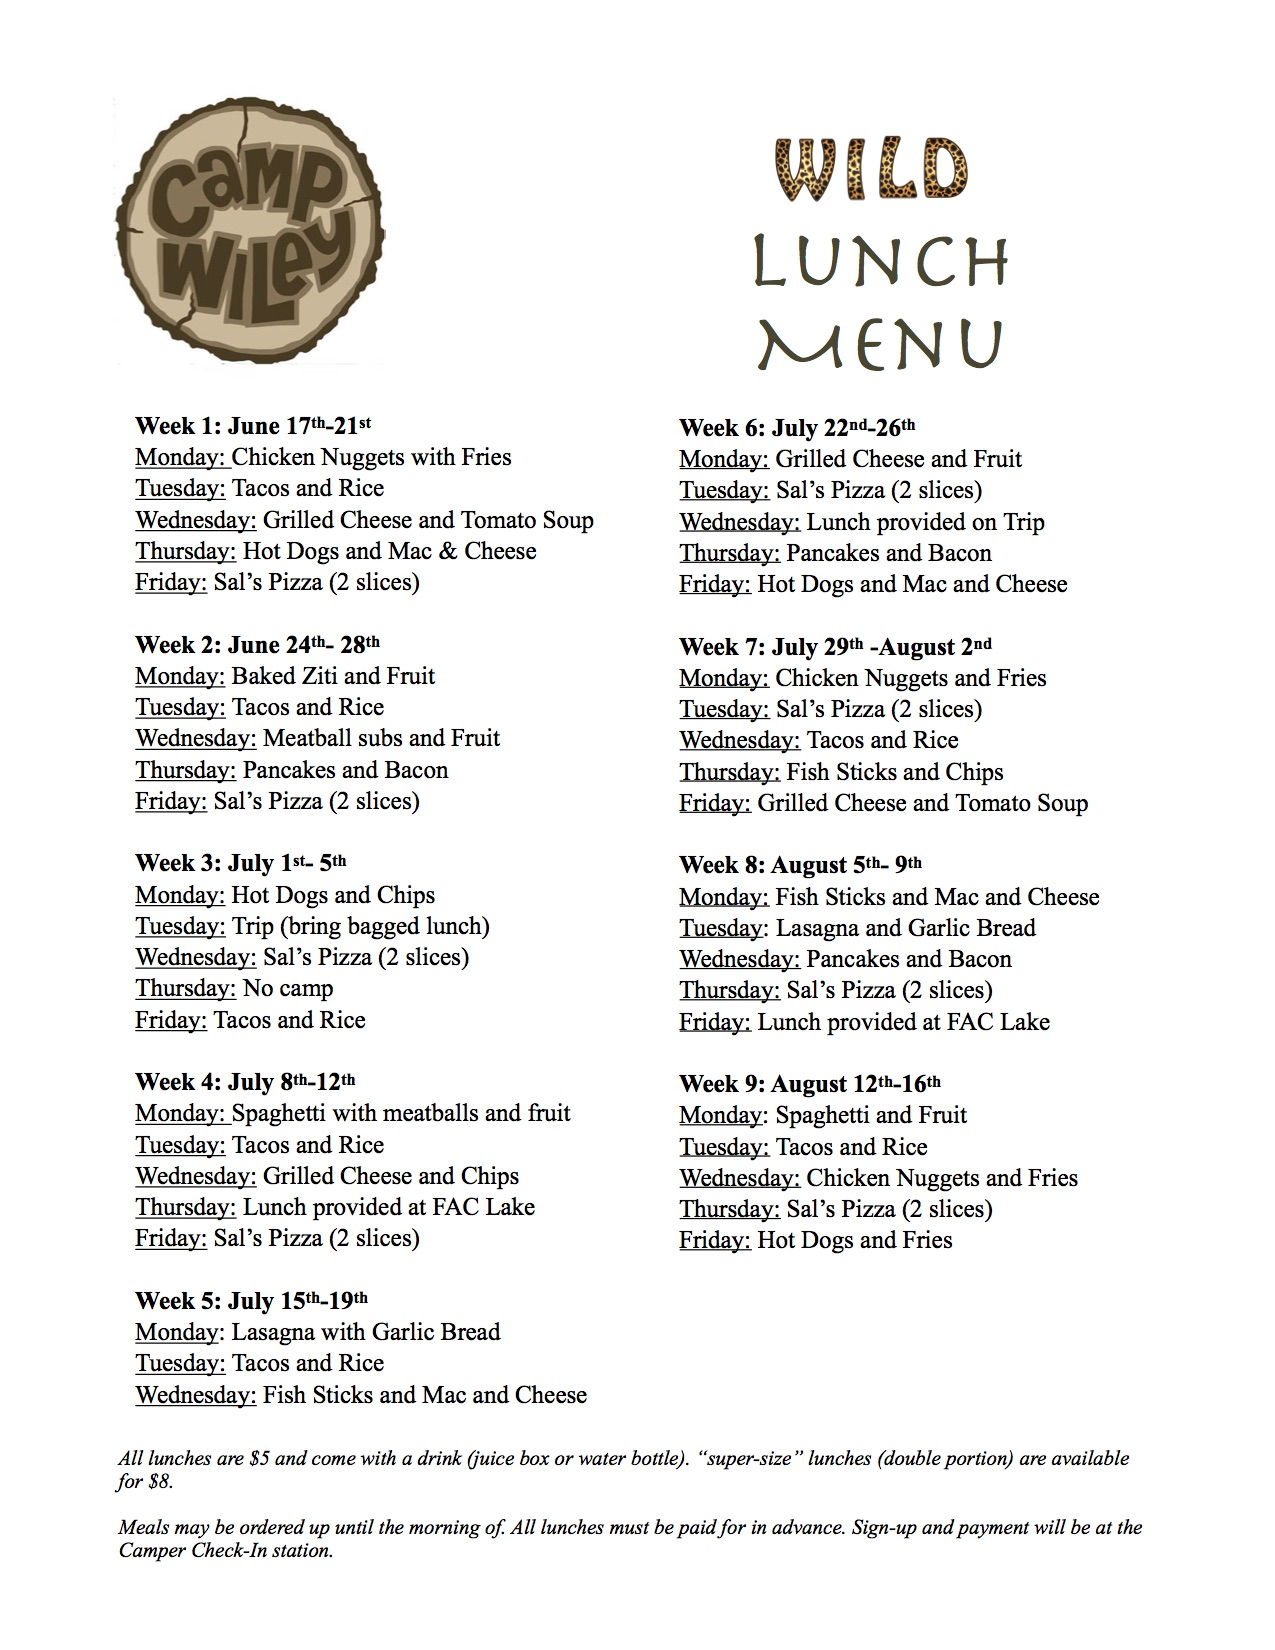 https://www.wileymission.org/uploads/2019Lunches.jpg